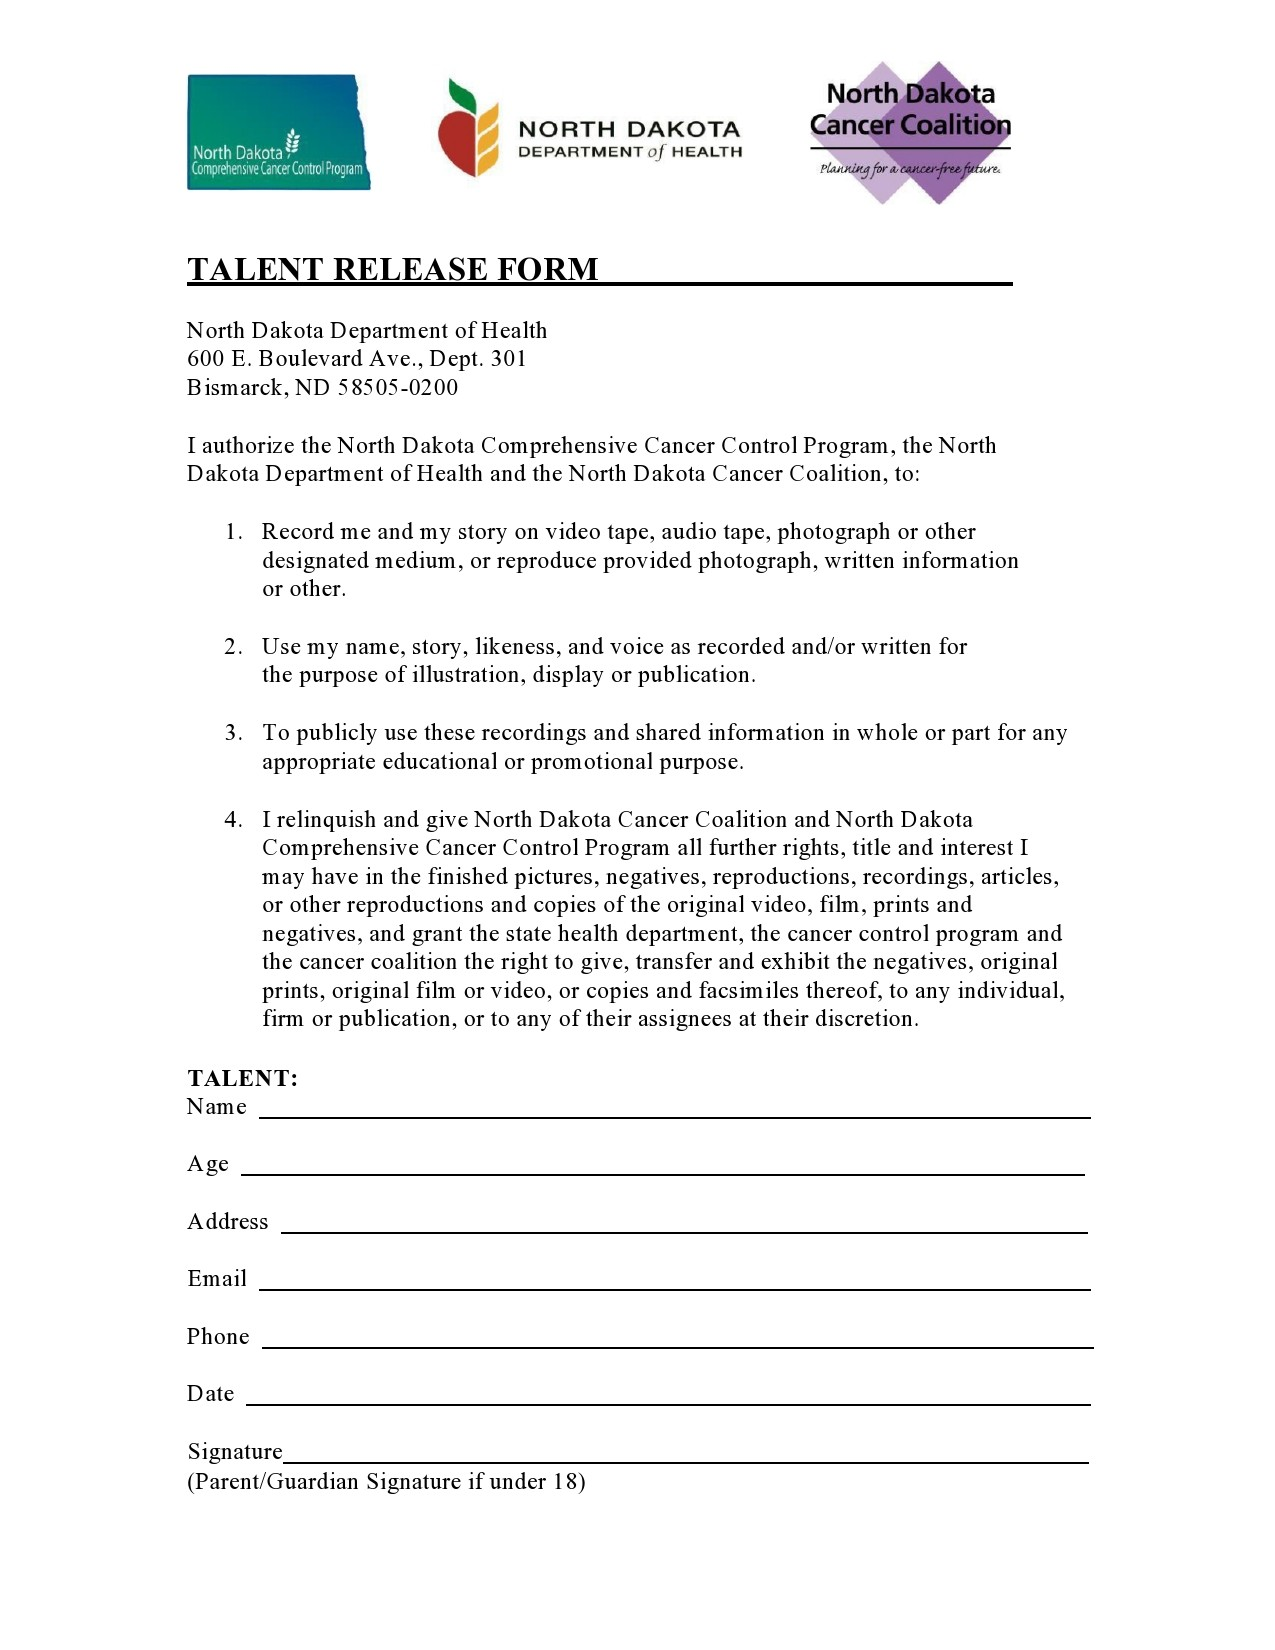 Free talent release form 46